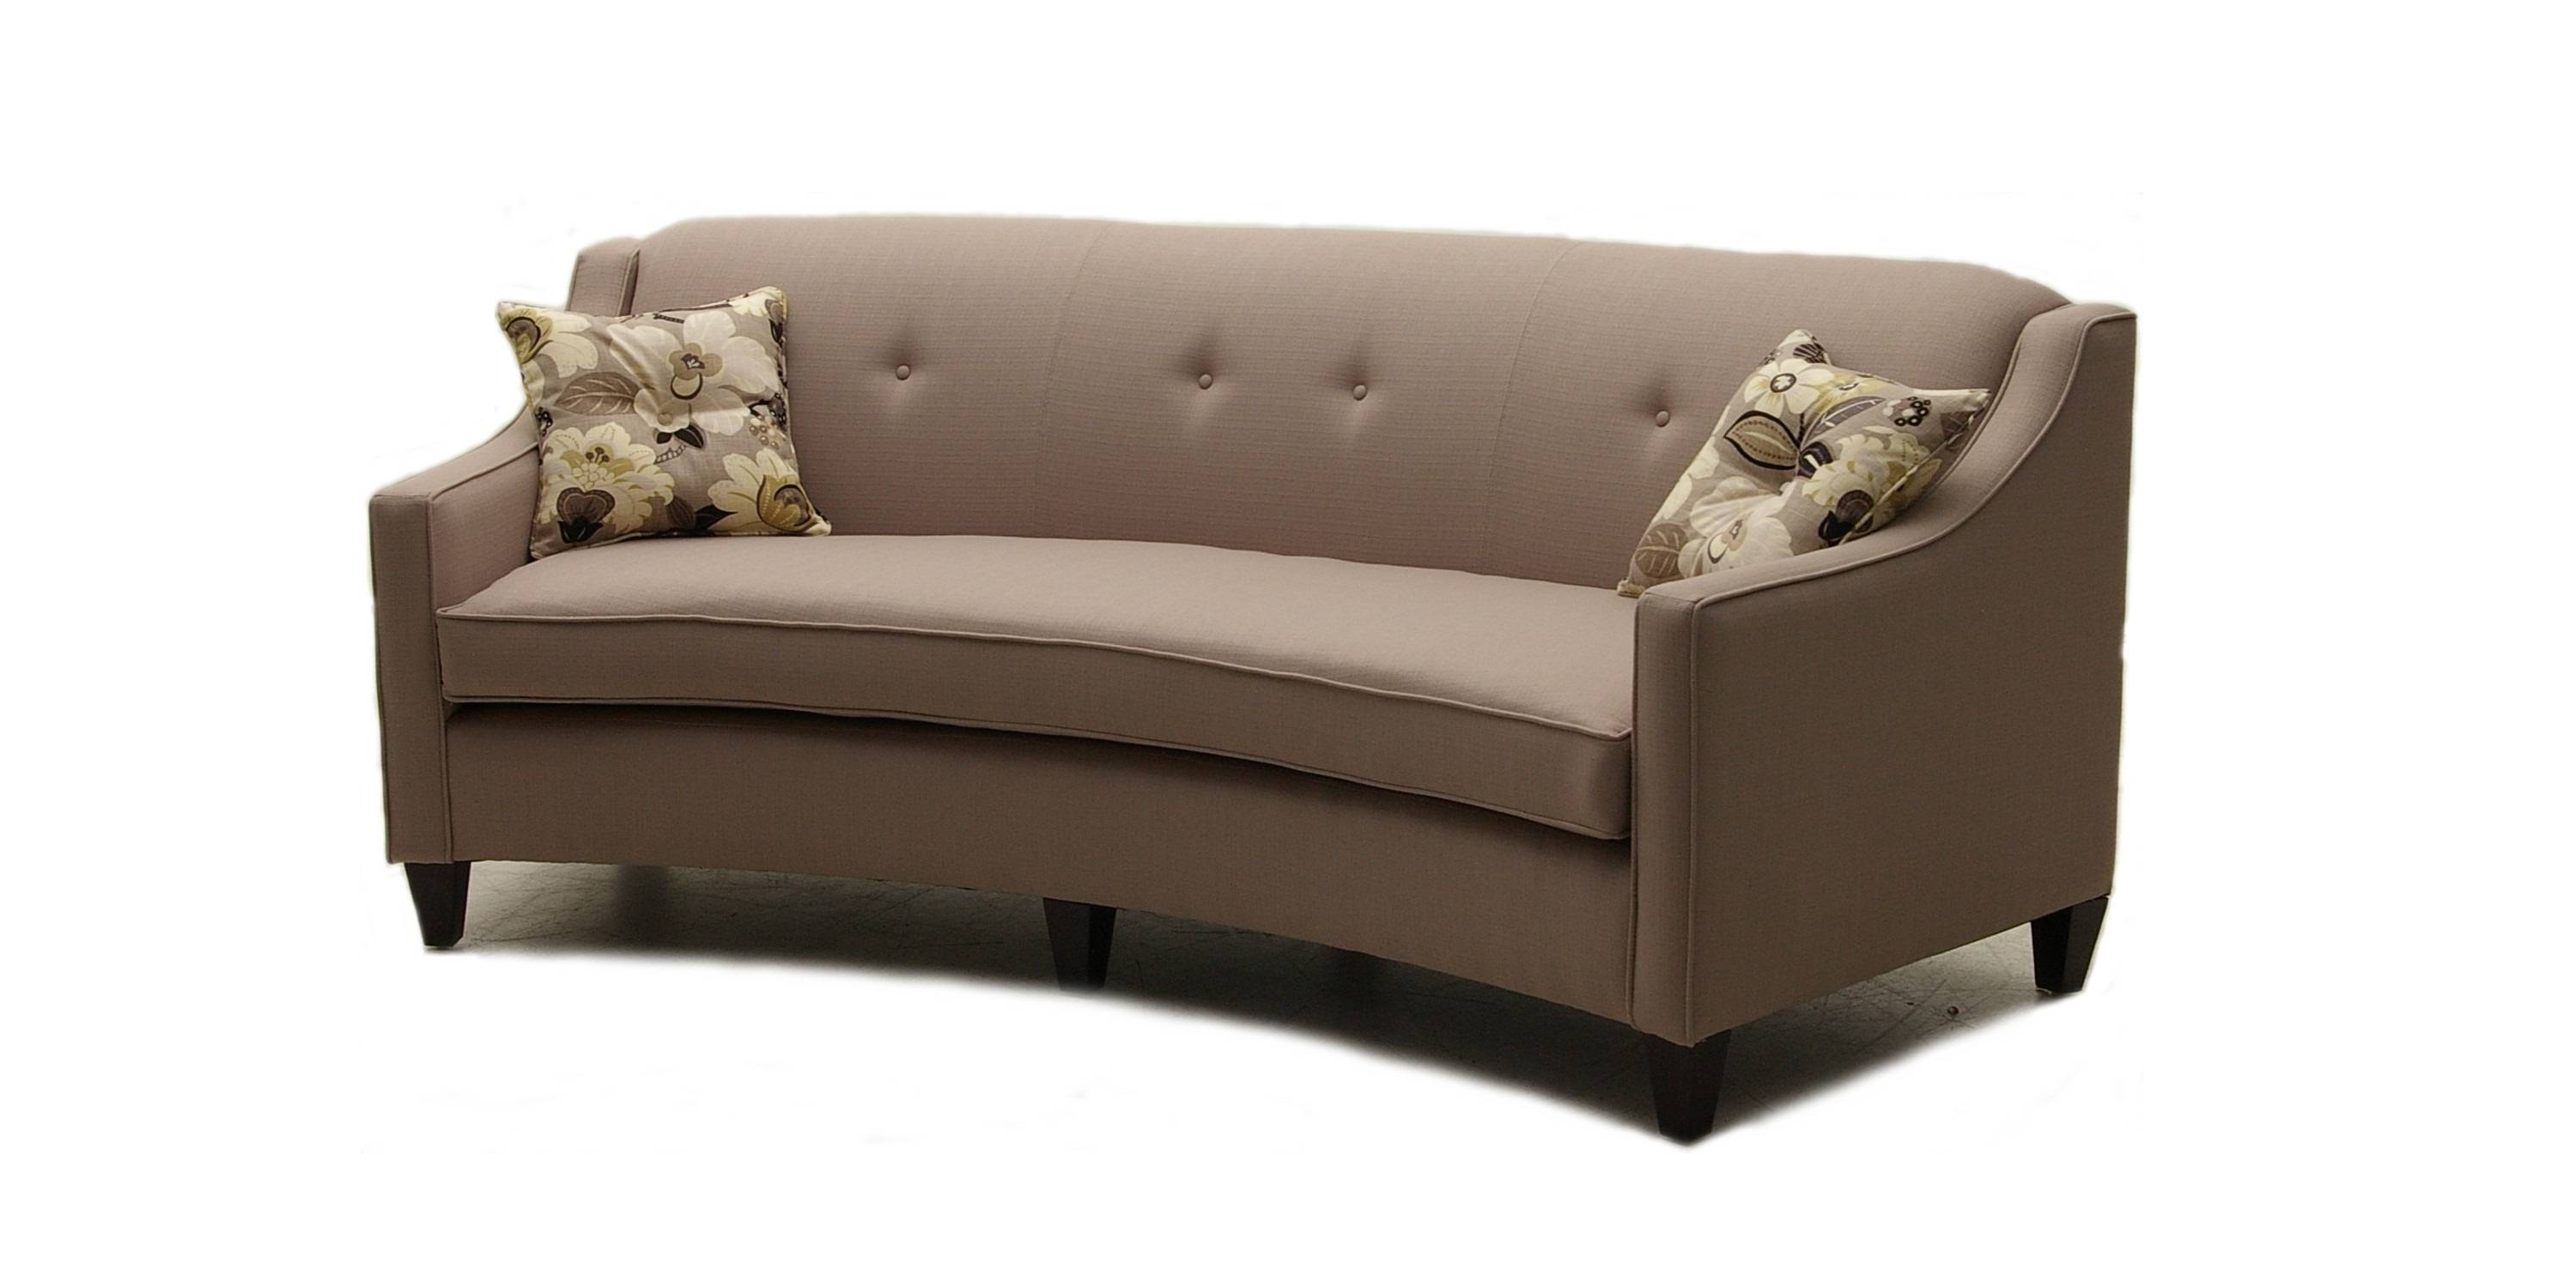 Top Modern Curved Sofa With Contemporary Curved And Round Regarding  Contemporary Curved Sofas (Image 30